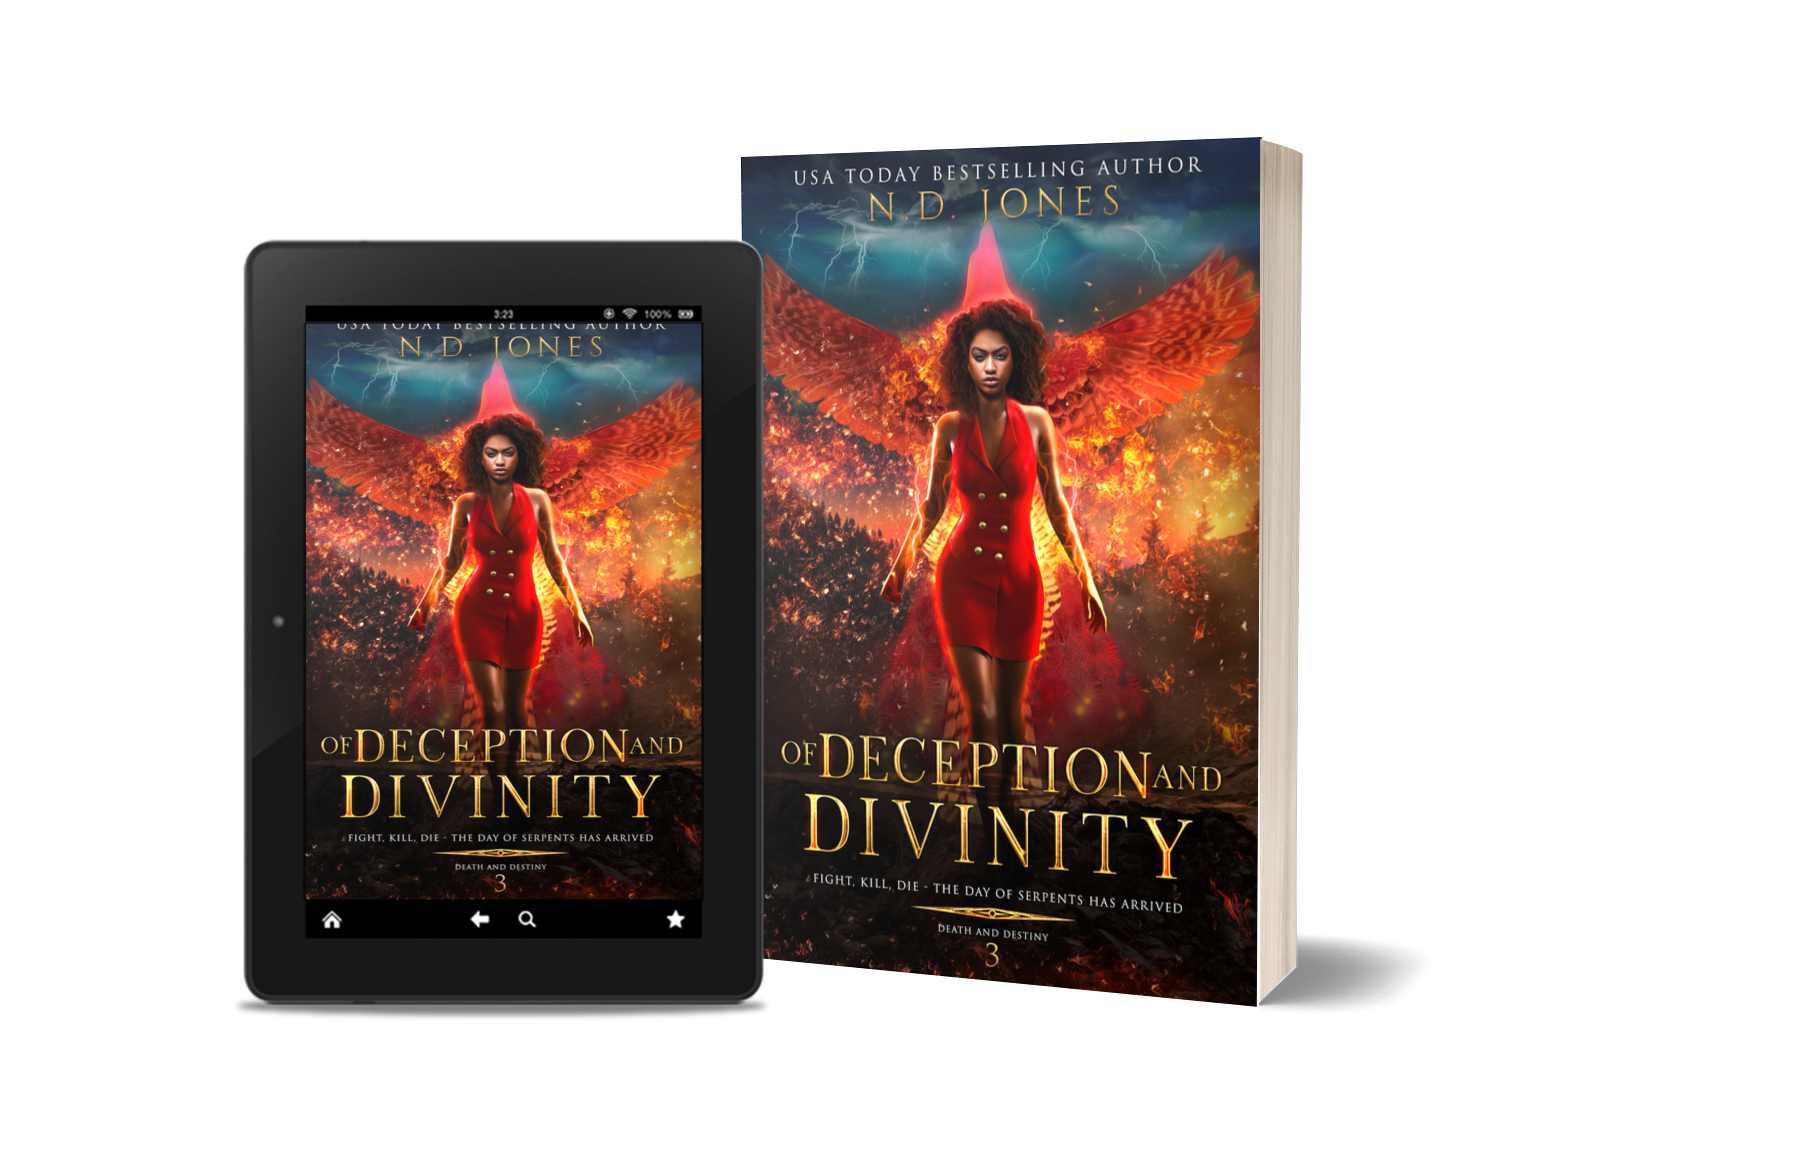 Of Deception and Divinity Black Paranormal Romance Witch and Shapeshifter by ND Jones